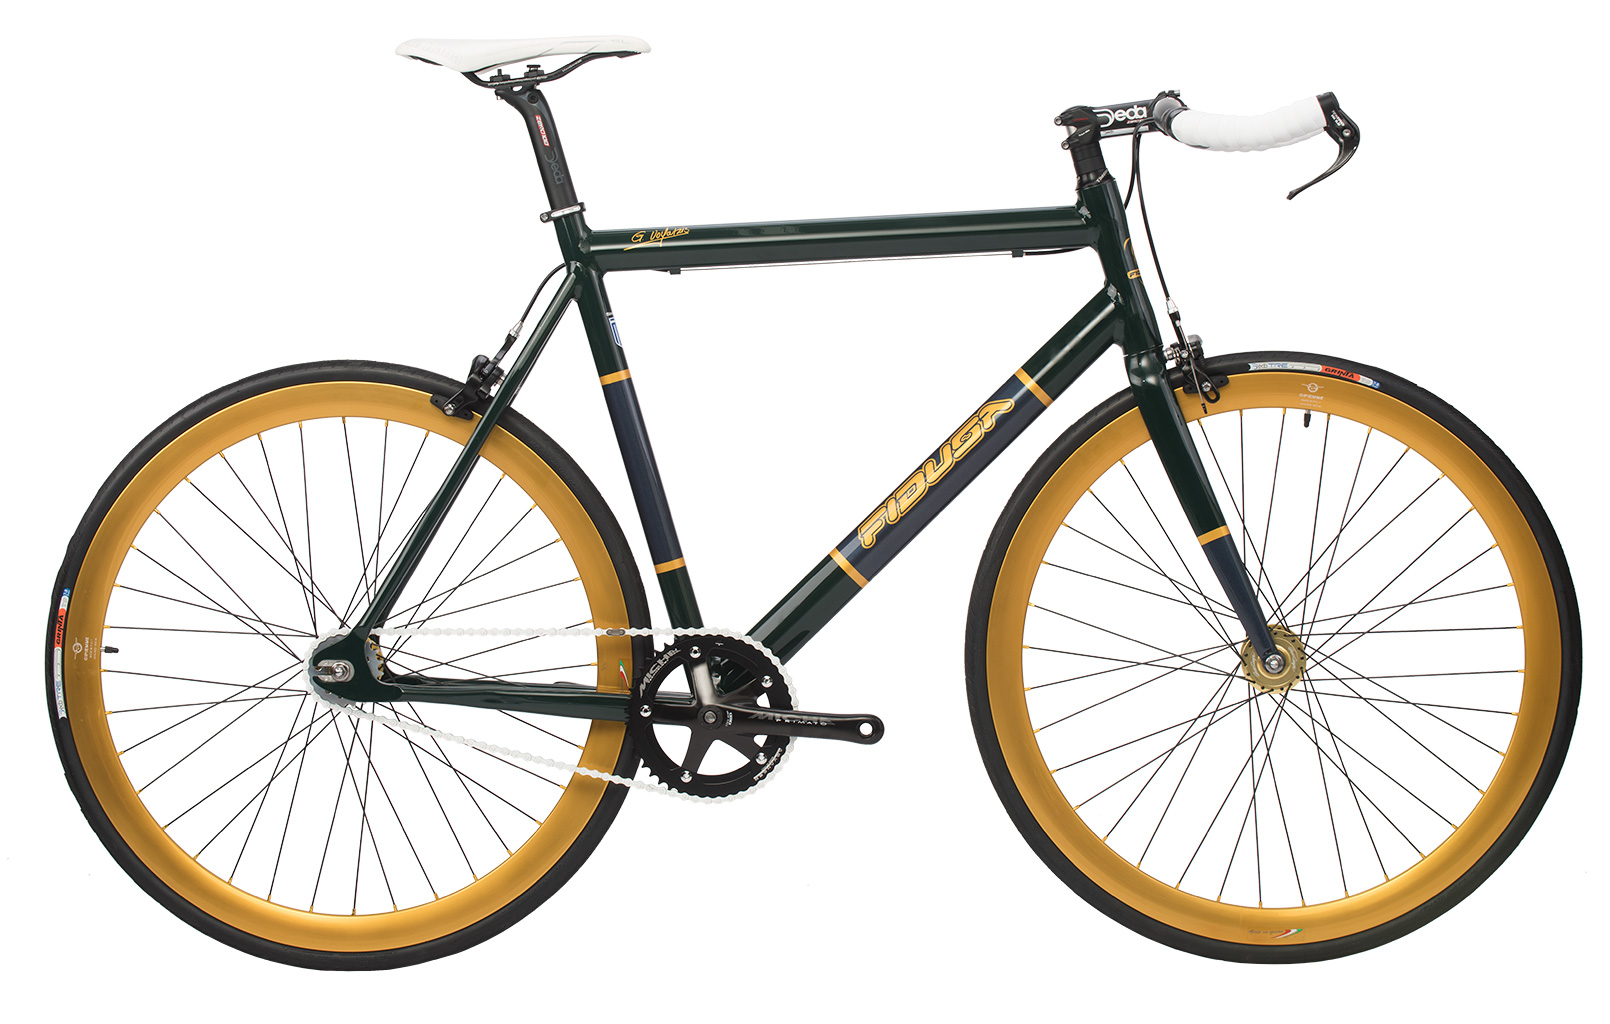 alloy-single-speed-bicycle8 Strati's Alloy Single Speed Bicycle